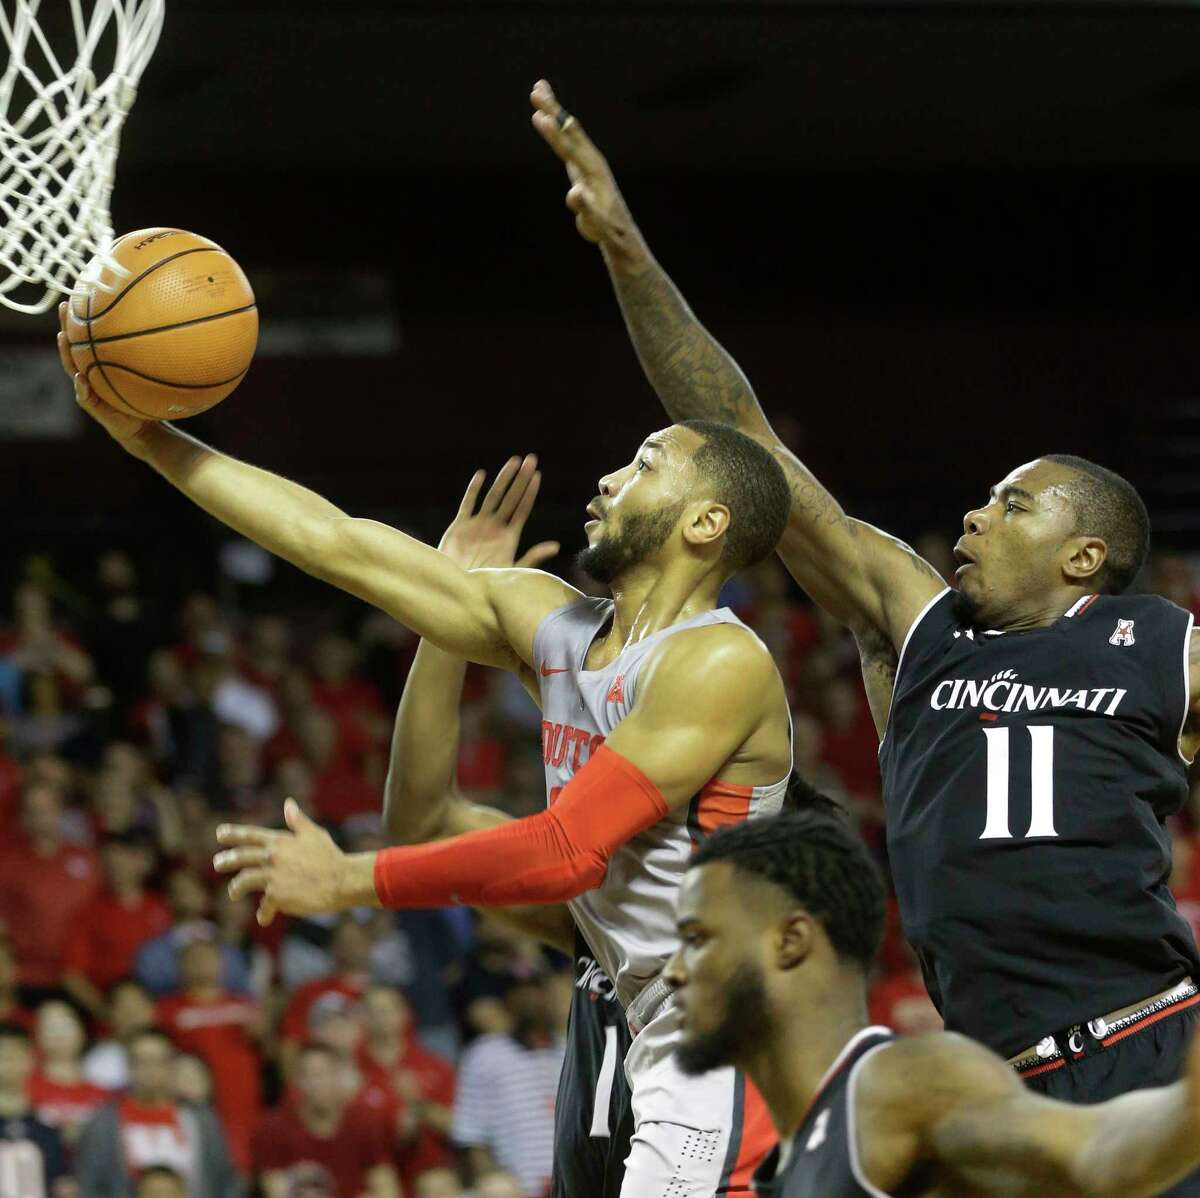 University of Houston Galen Robinson Jr. shoots past and the University of Cincinnati Gary Clark during the first half of game at Texas Southern University Thursday, Feb. 15, 2018, in Houston.